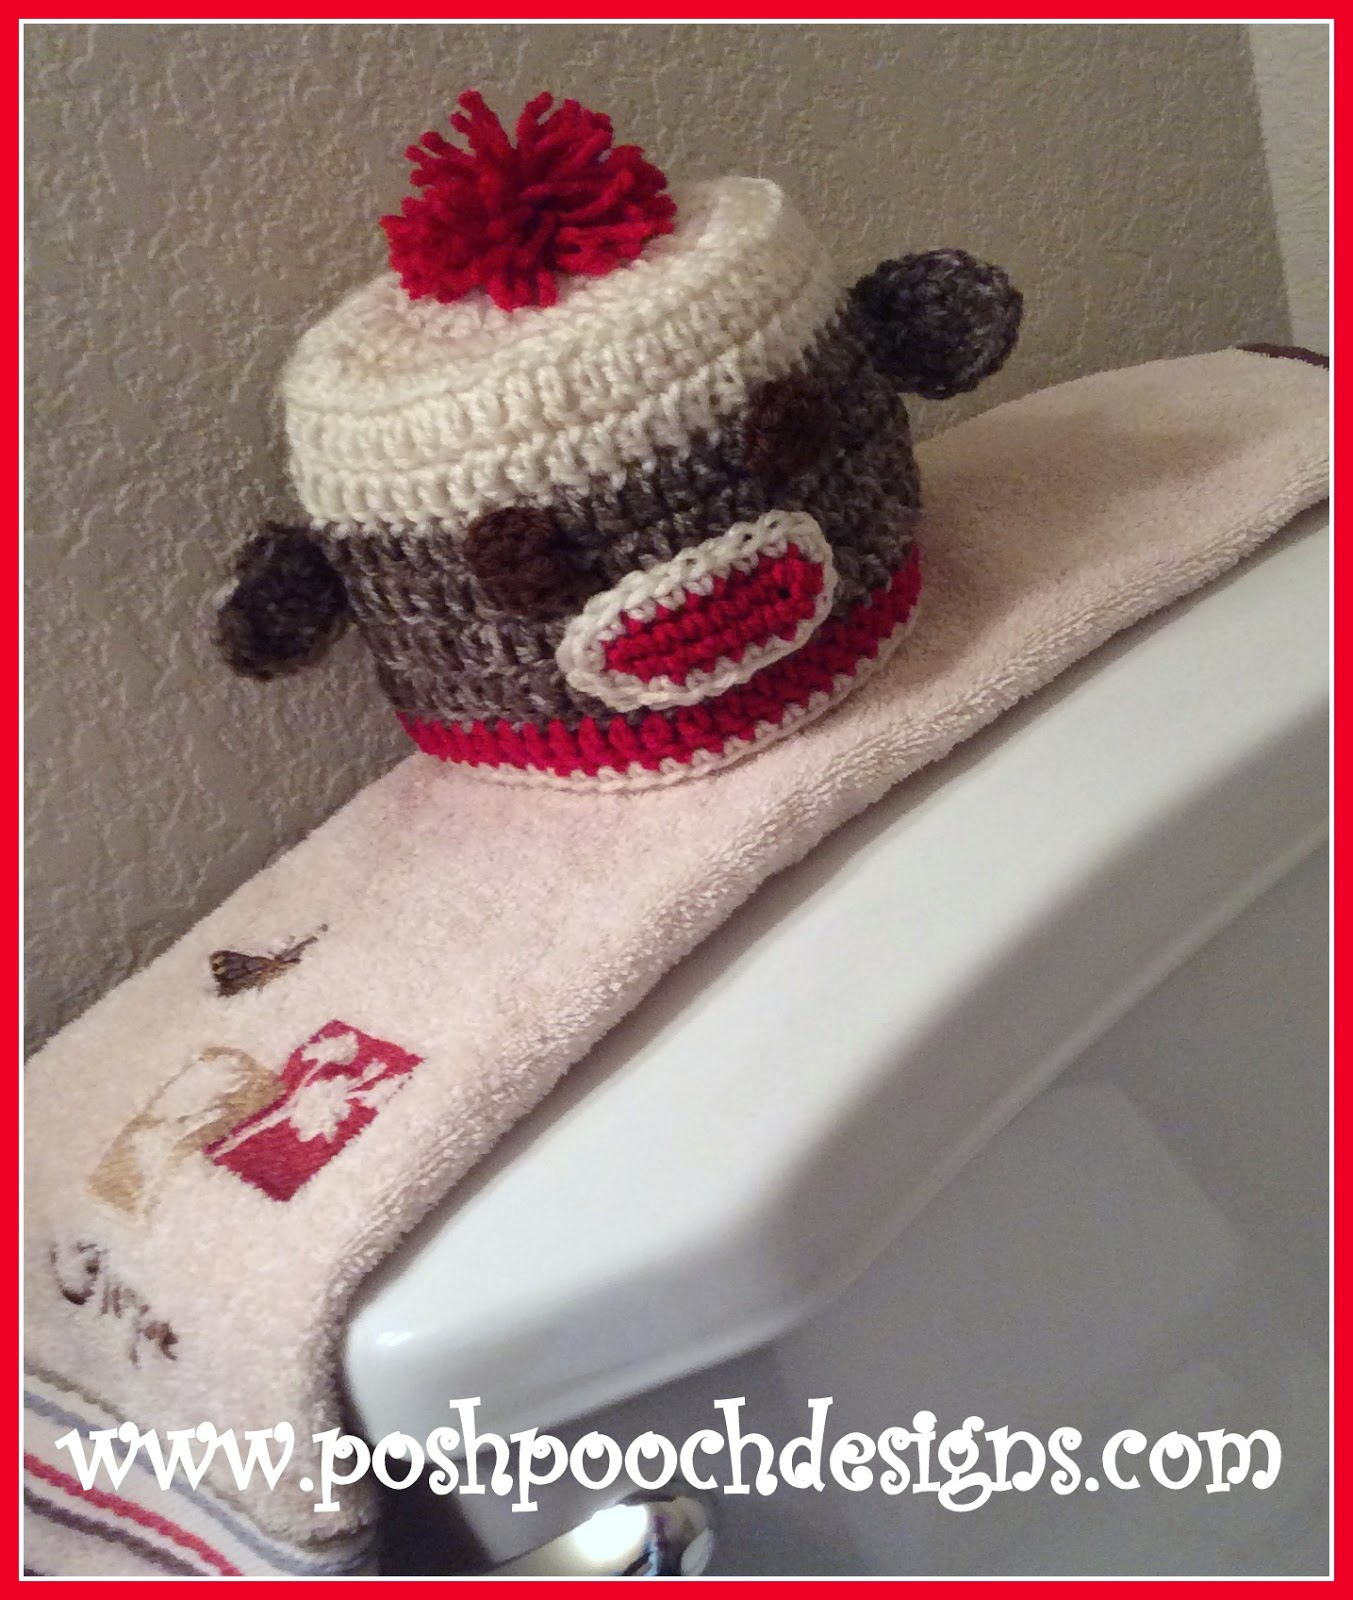 Posh Pooch Designs Dog Clothes: Sock Monkey Toilet Paper Cover ...